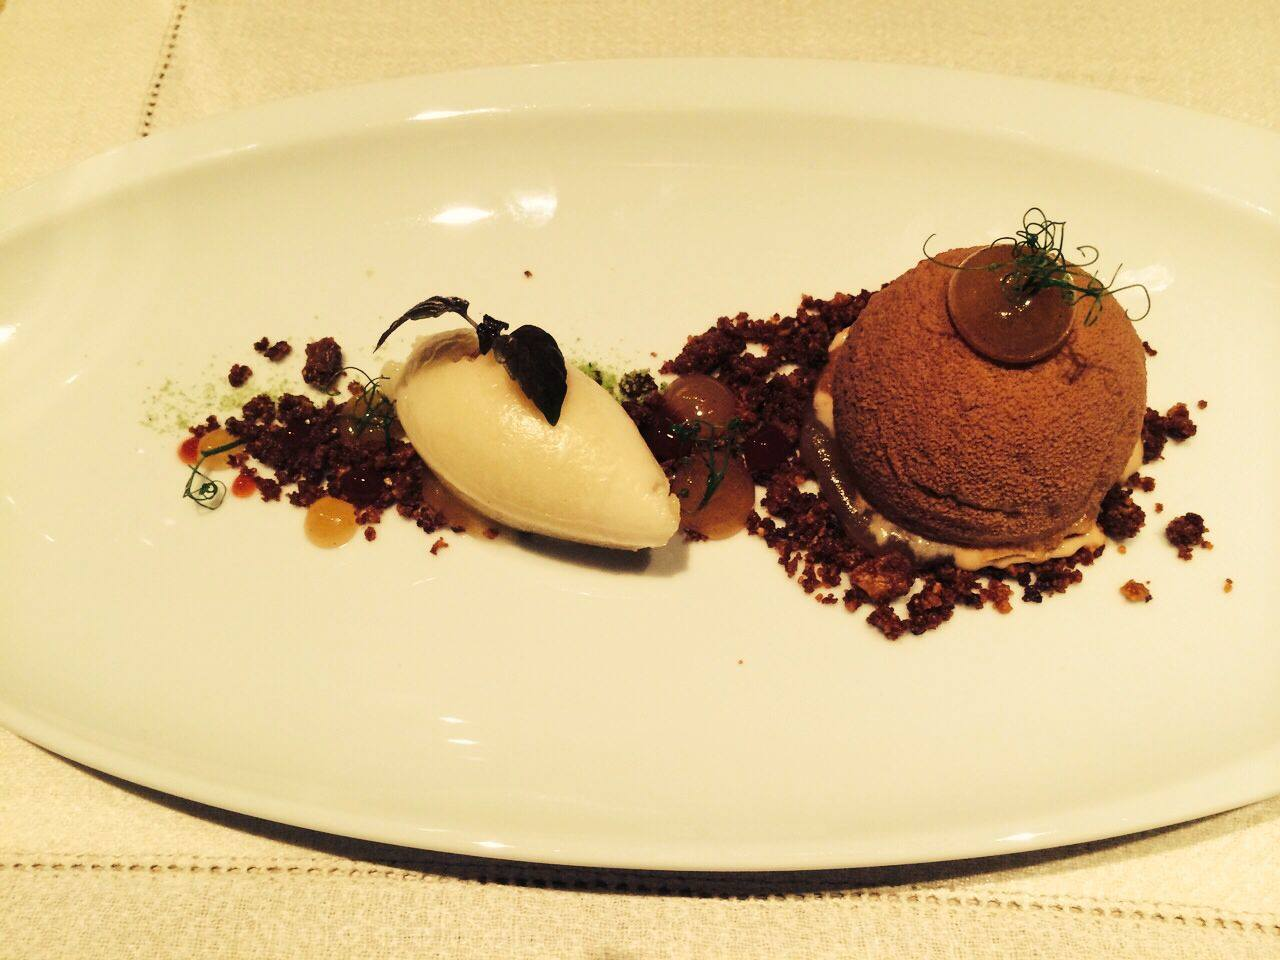 Tian: Apple & almond dessert